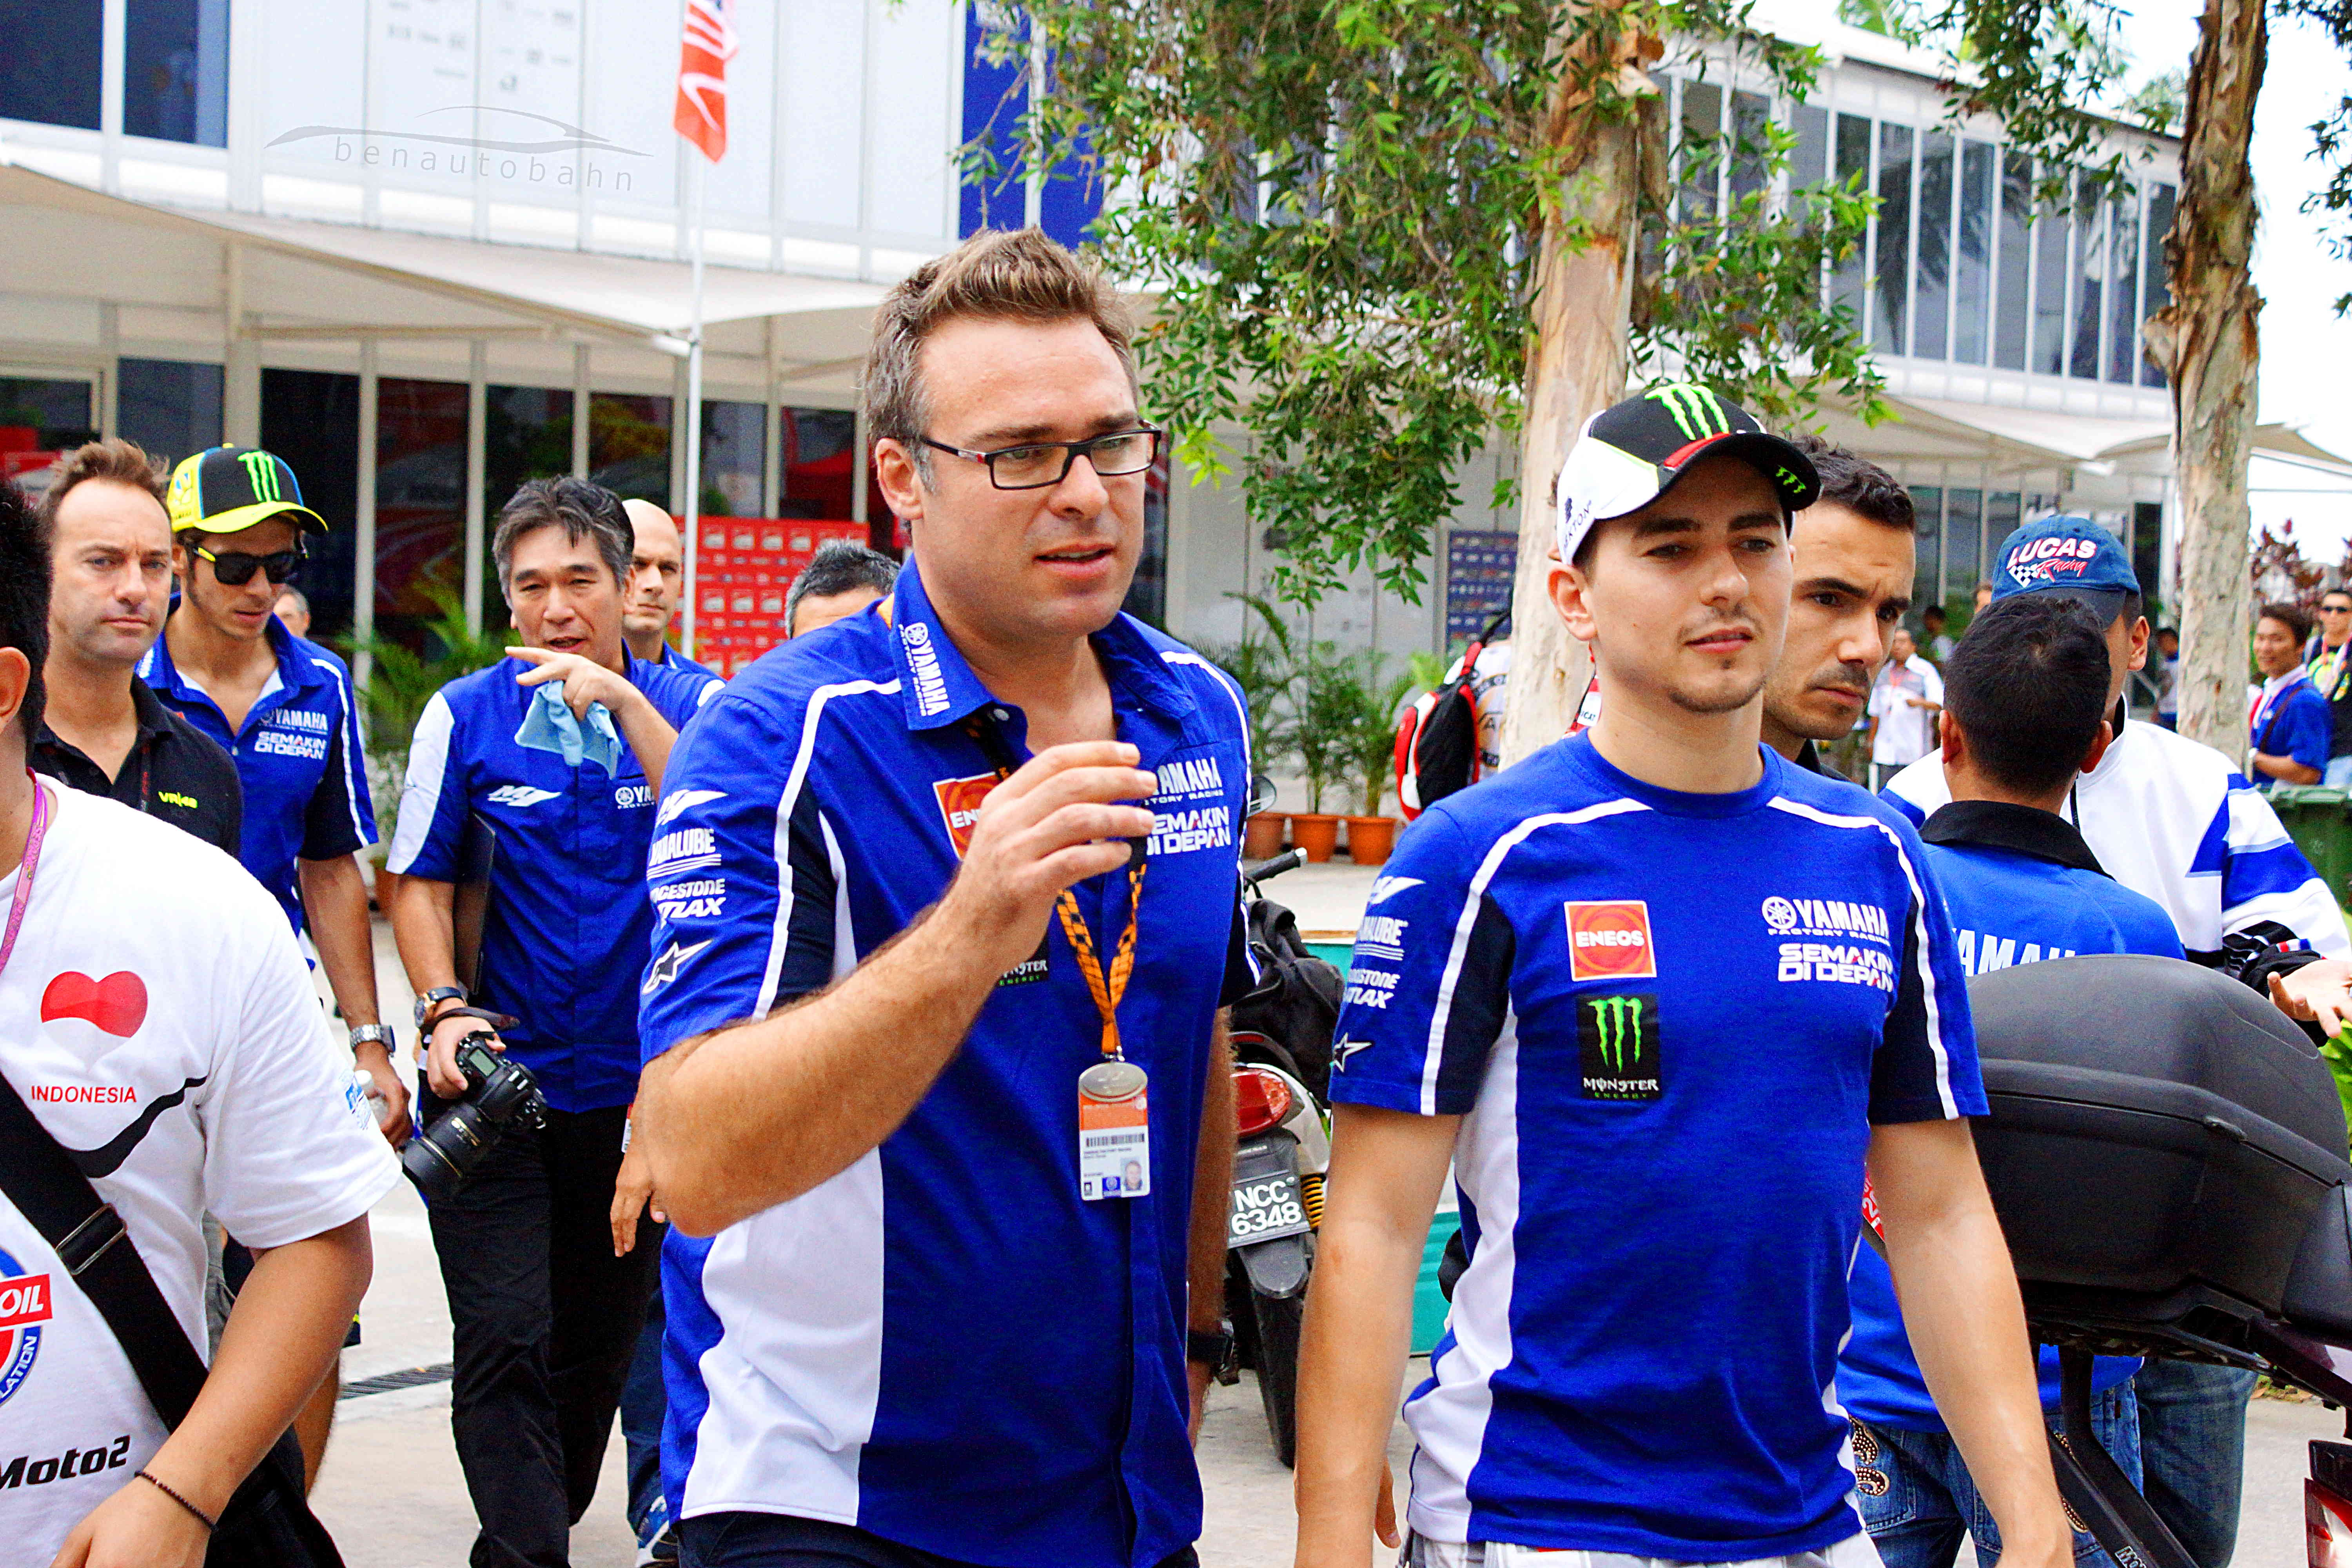 Jorge Lorenzo (right), and Valentino Rossi (rear left, both wearing caps) chatting with their team.